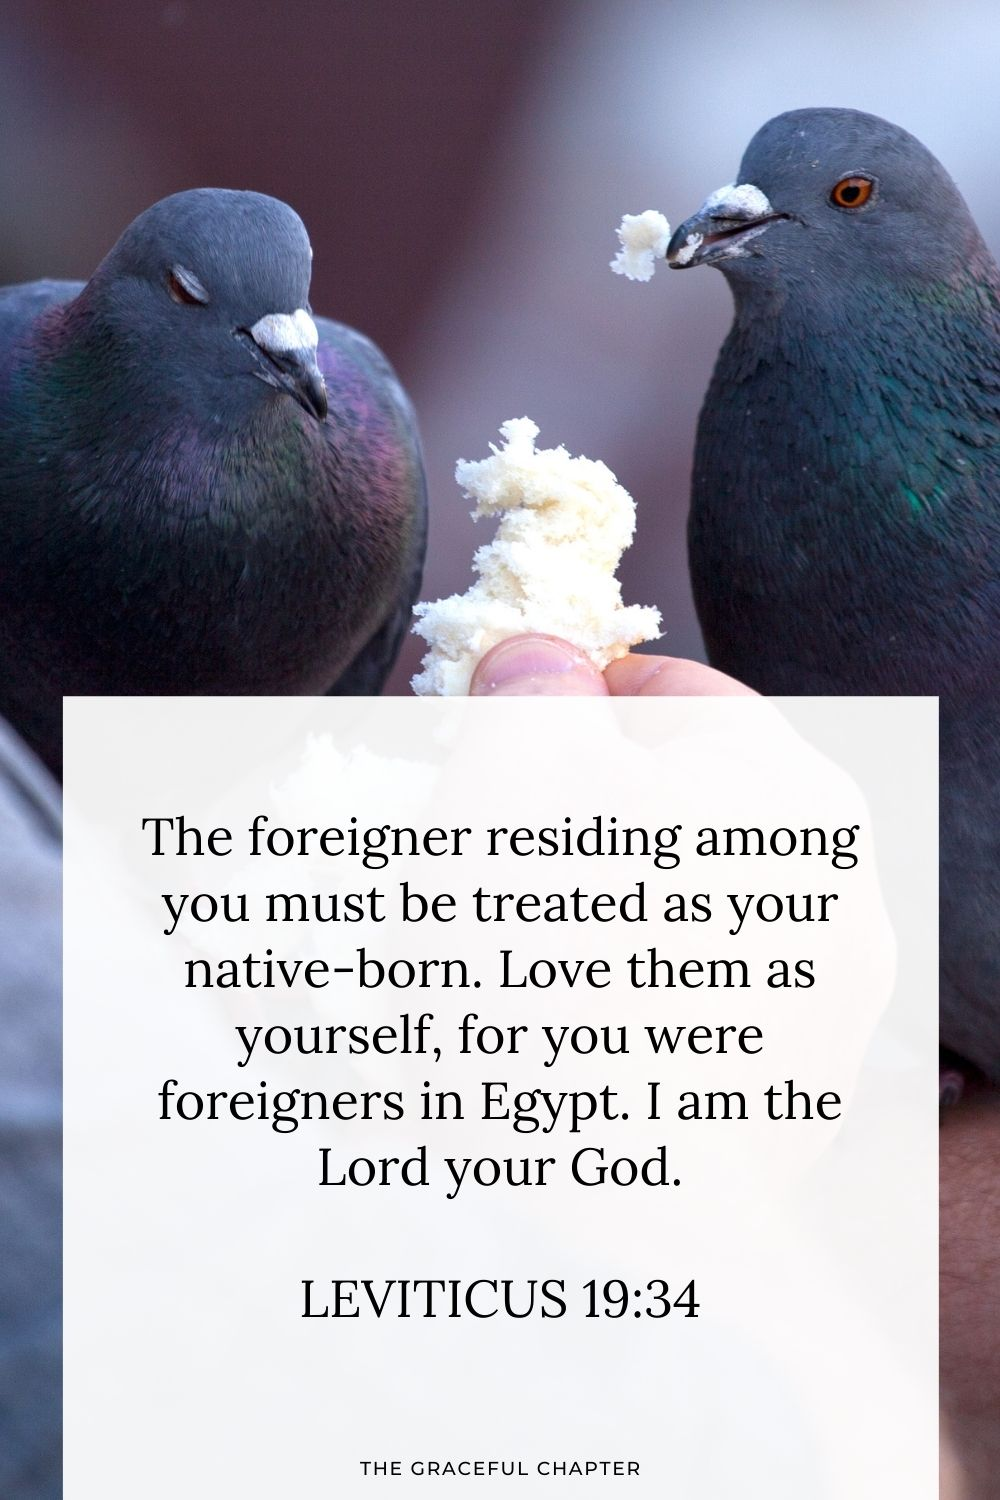 The foreigner residing among you must be treated as your native-born. Love them as yourself, for you were foreigners in Egypt. I am the Lord your God. Leviticus 19:34